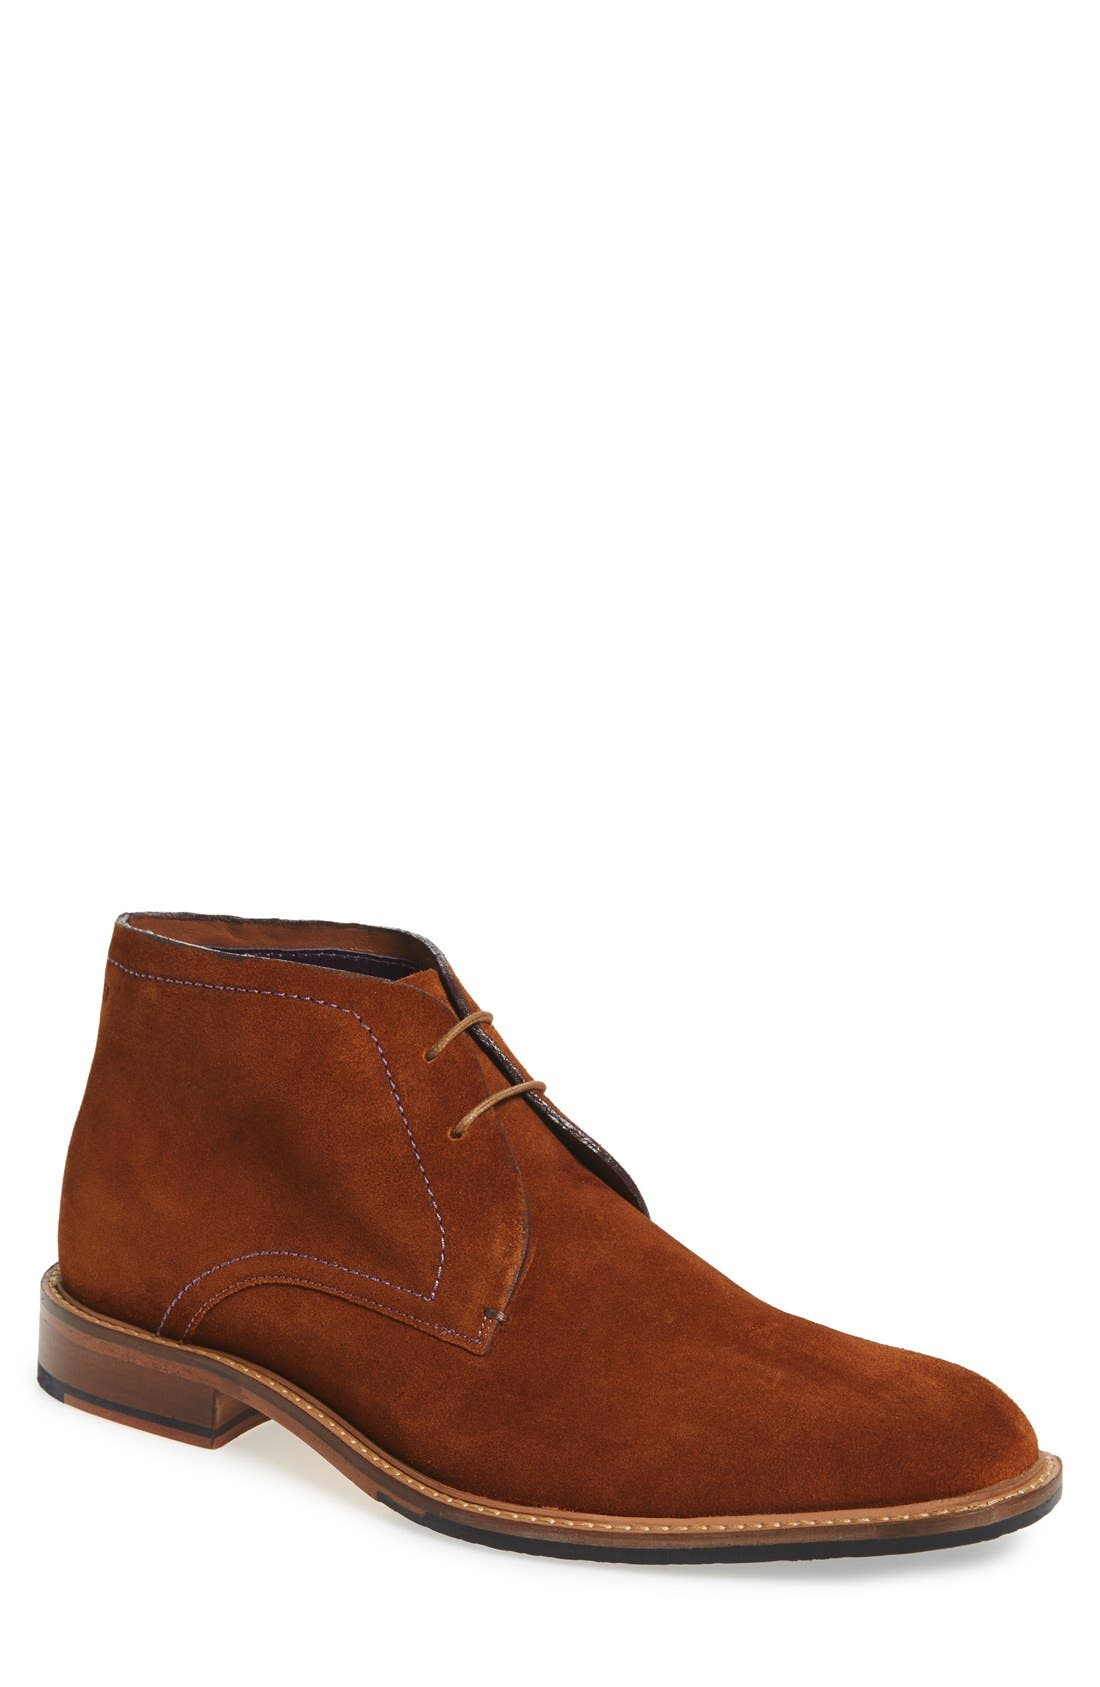 'Torsdi 4' Chukka Boot,                             Main thumbnail 5, color,